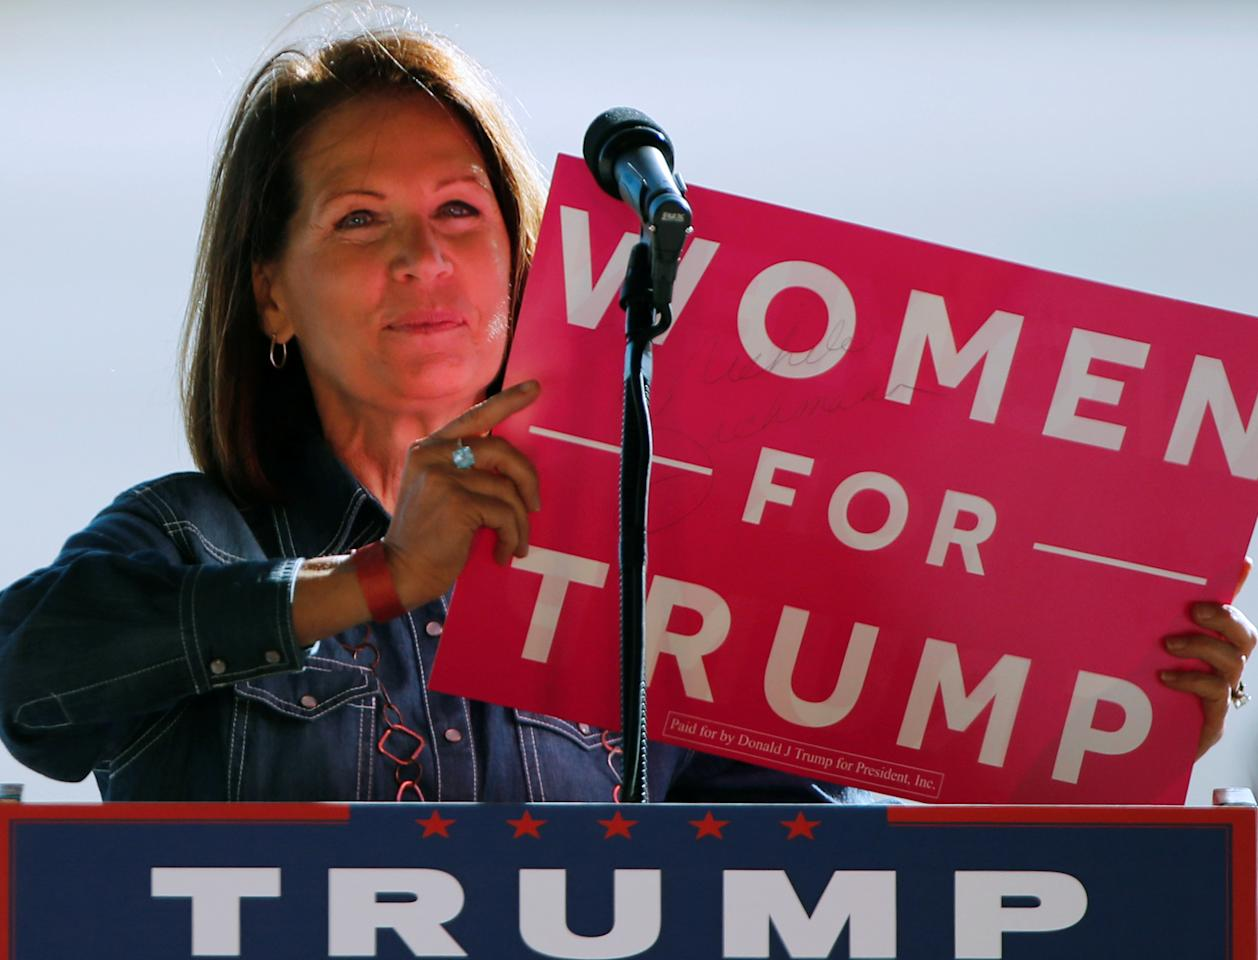 Former U.S. Representative Michele Bachmann (R-MN) speaks at a rally for Republican presidential nominee Donald Trump prior to his arrival in a cargo hangar at Minneapolis Saint Paul International Airport in Minneapolis, Minnesota, U.S. November 6, 2016. REUTERS/Jonathan Ernst